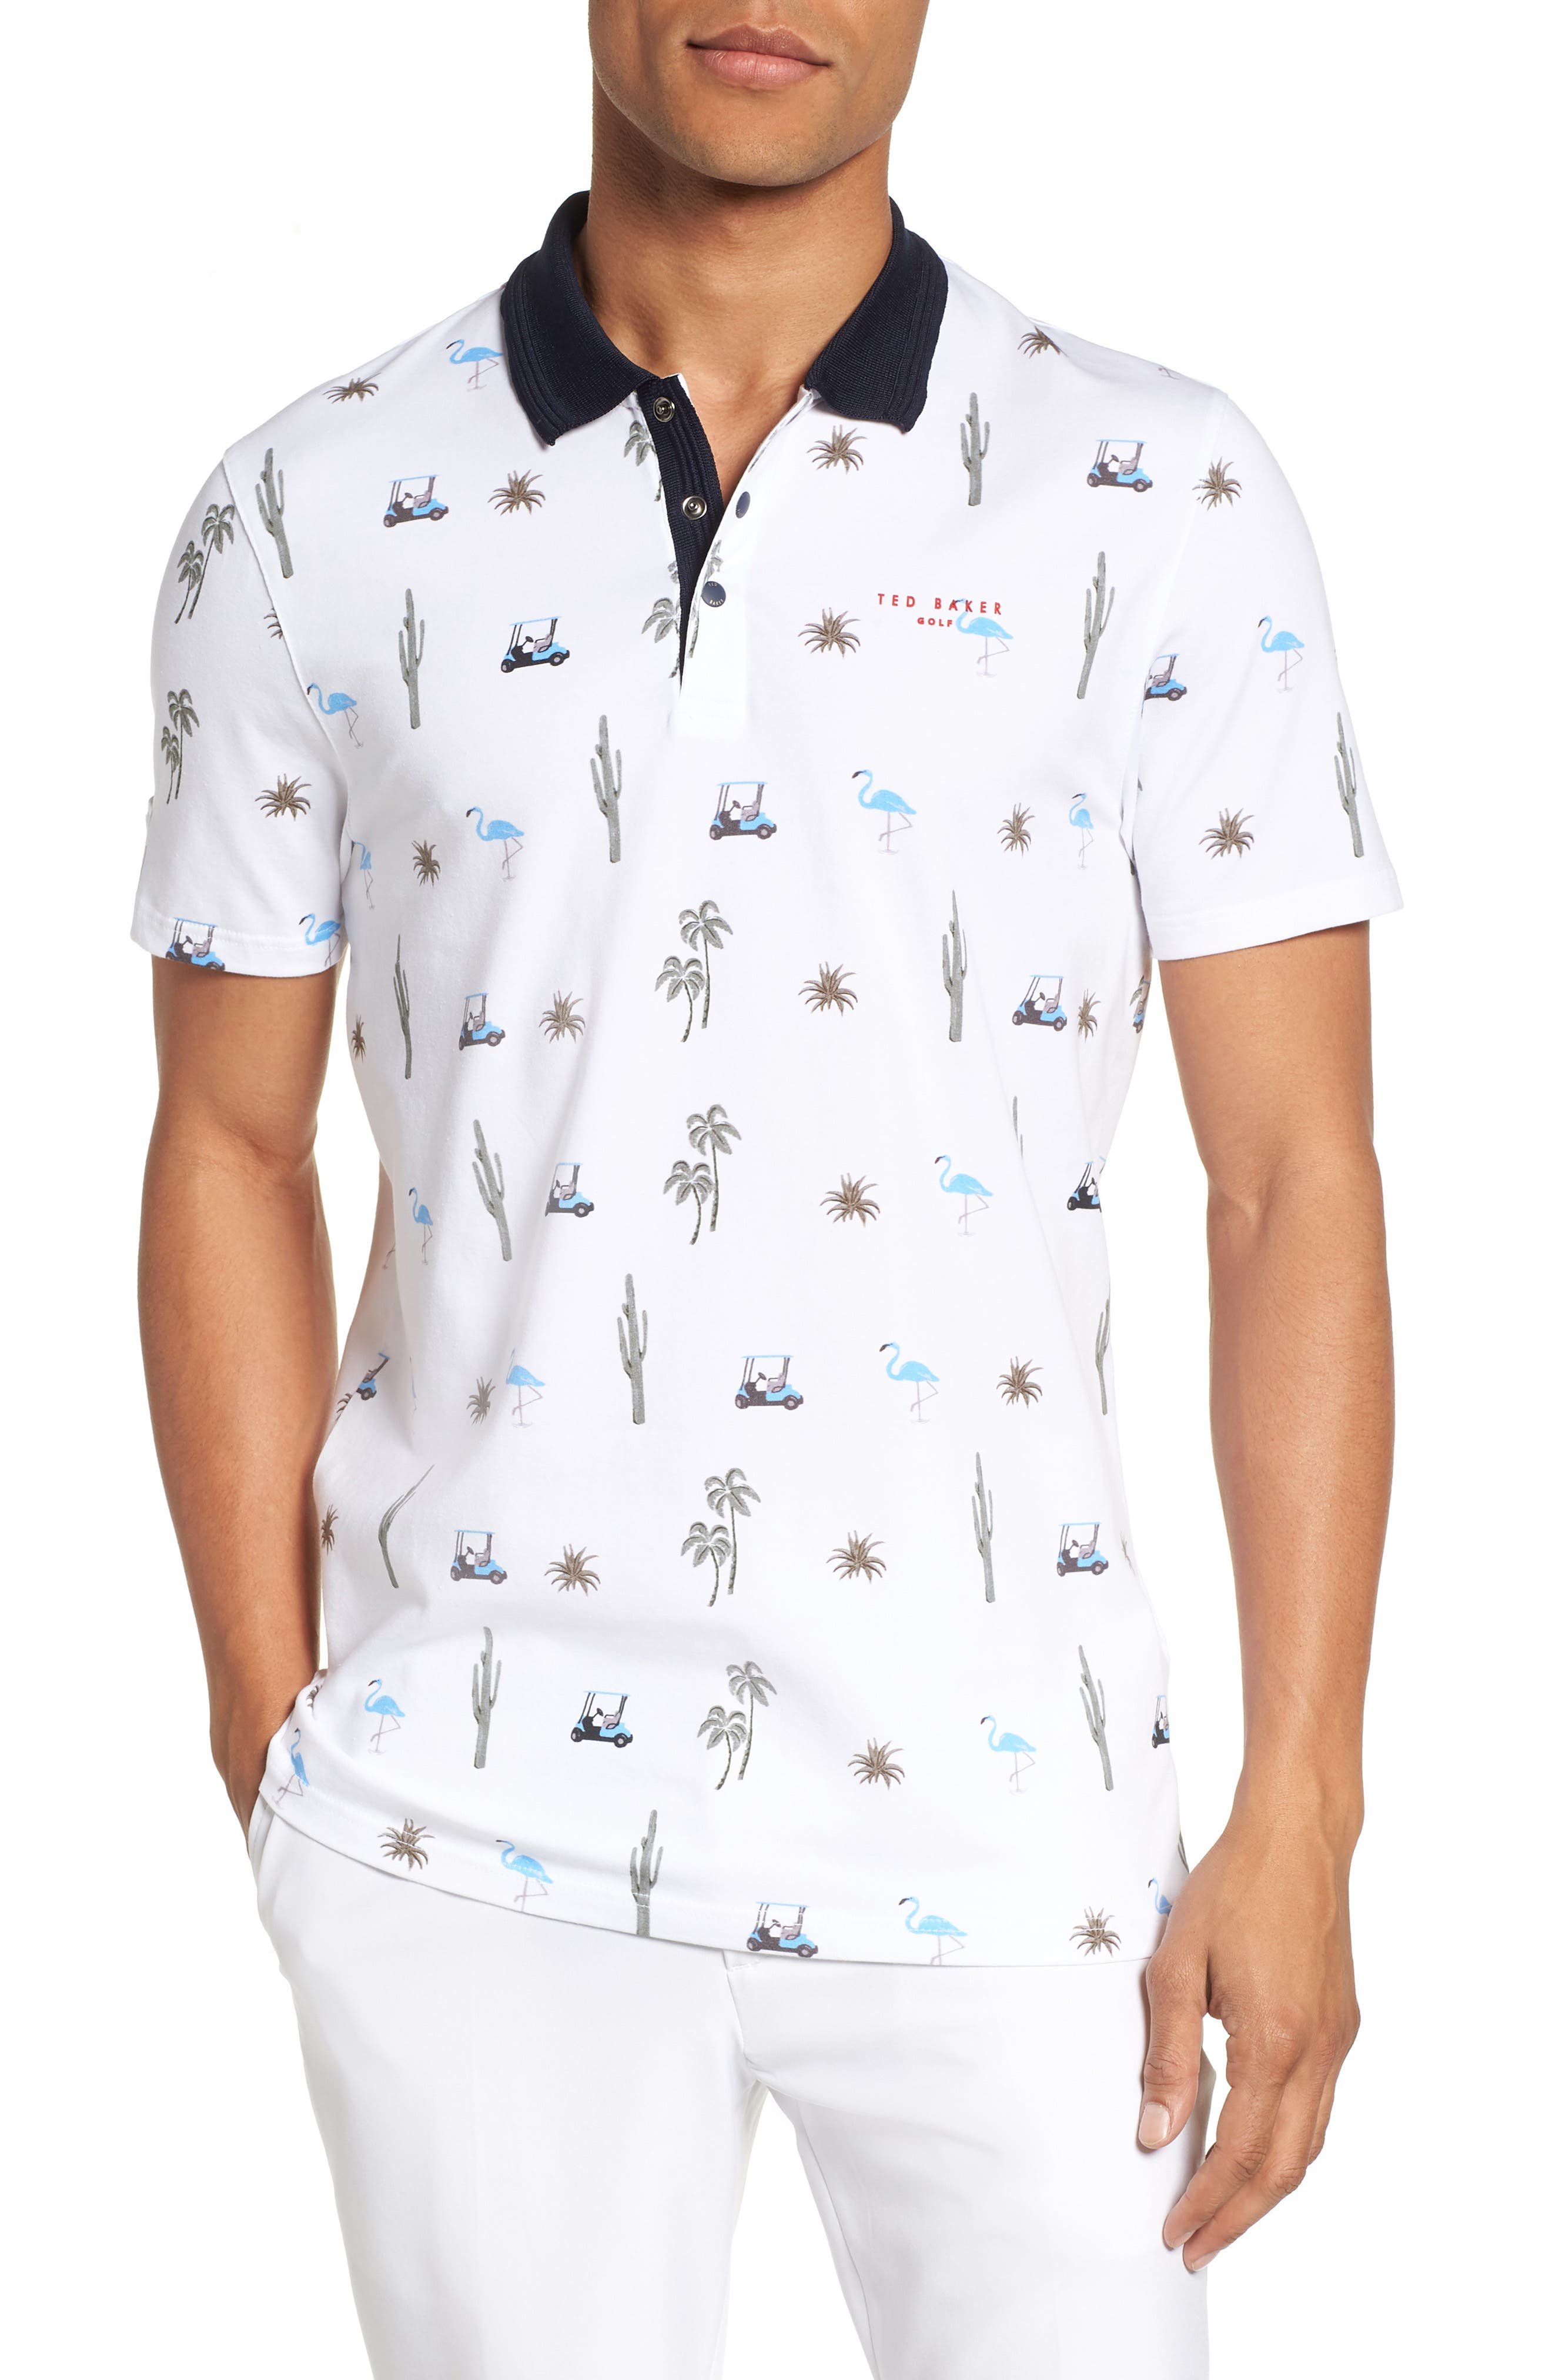 Main Image - Ted Baker London Trim Fit Golf Print Polo